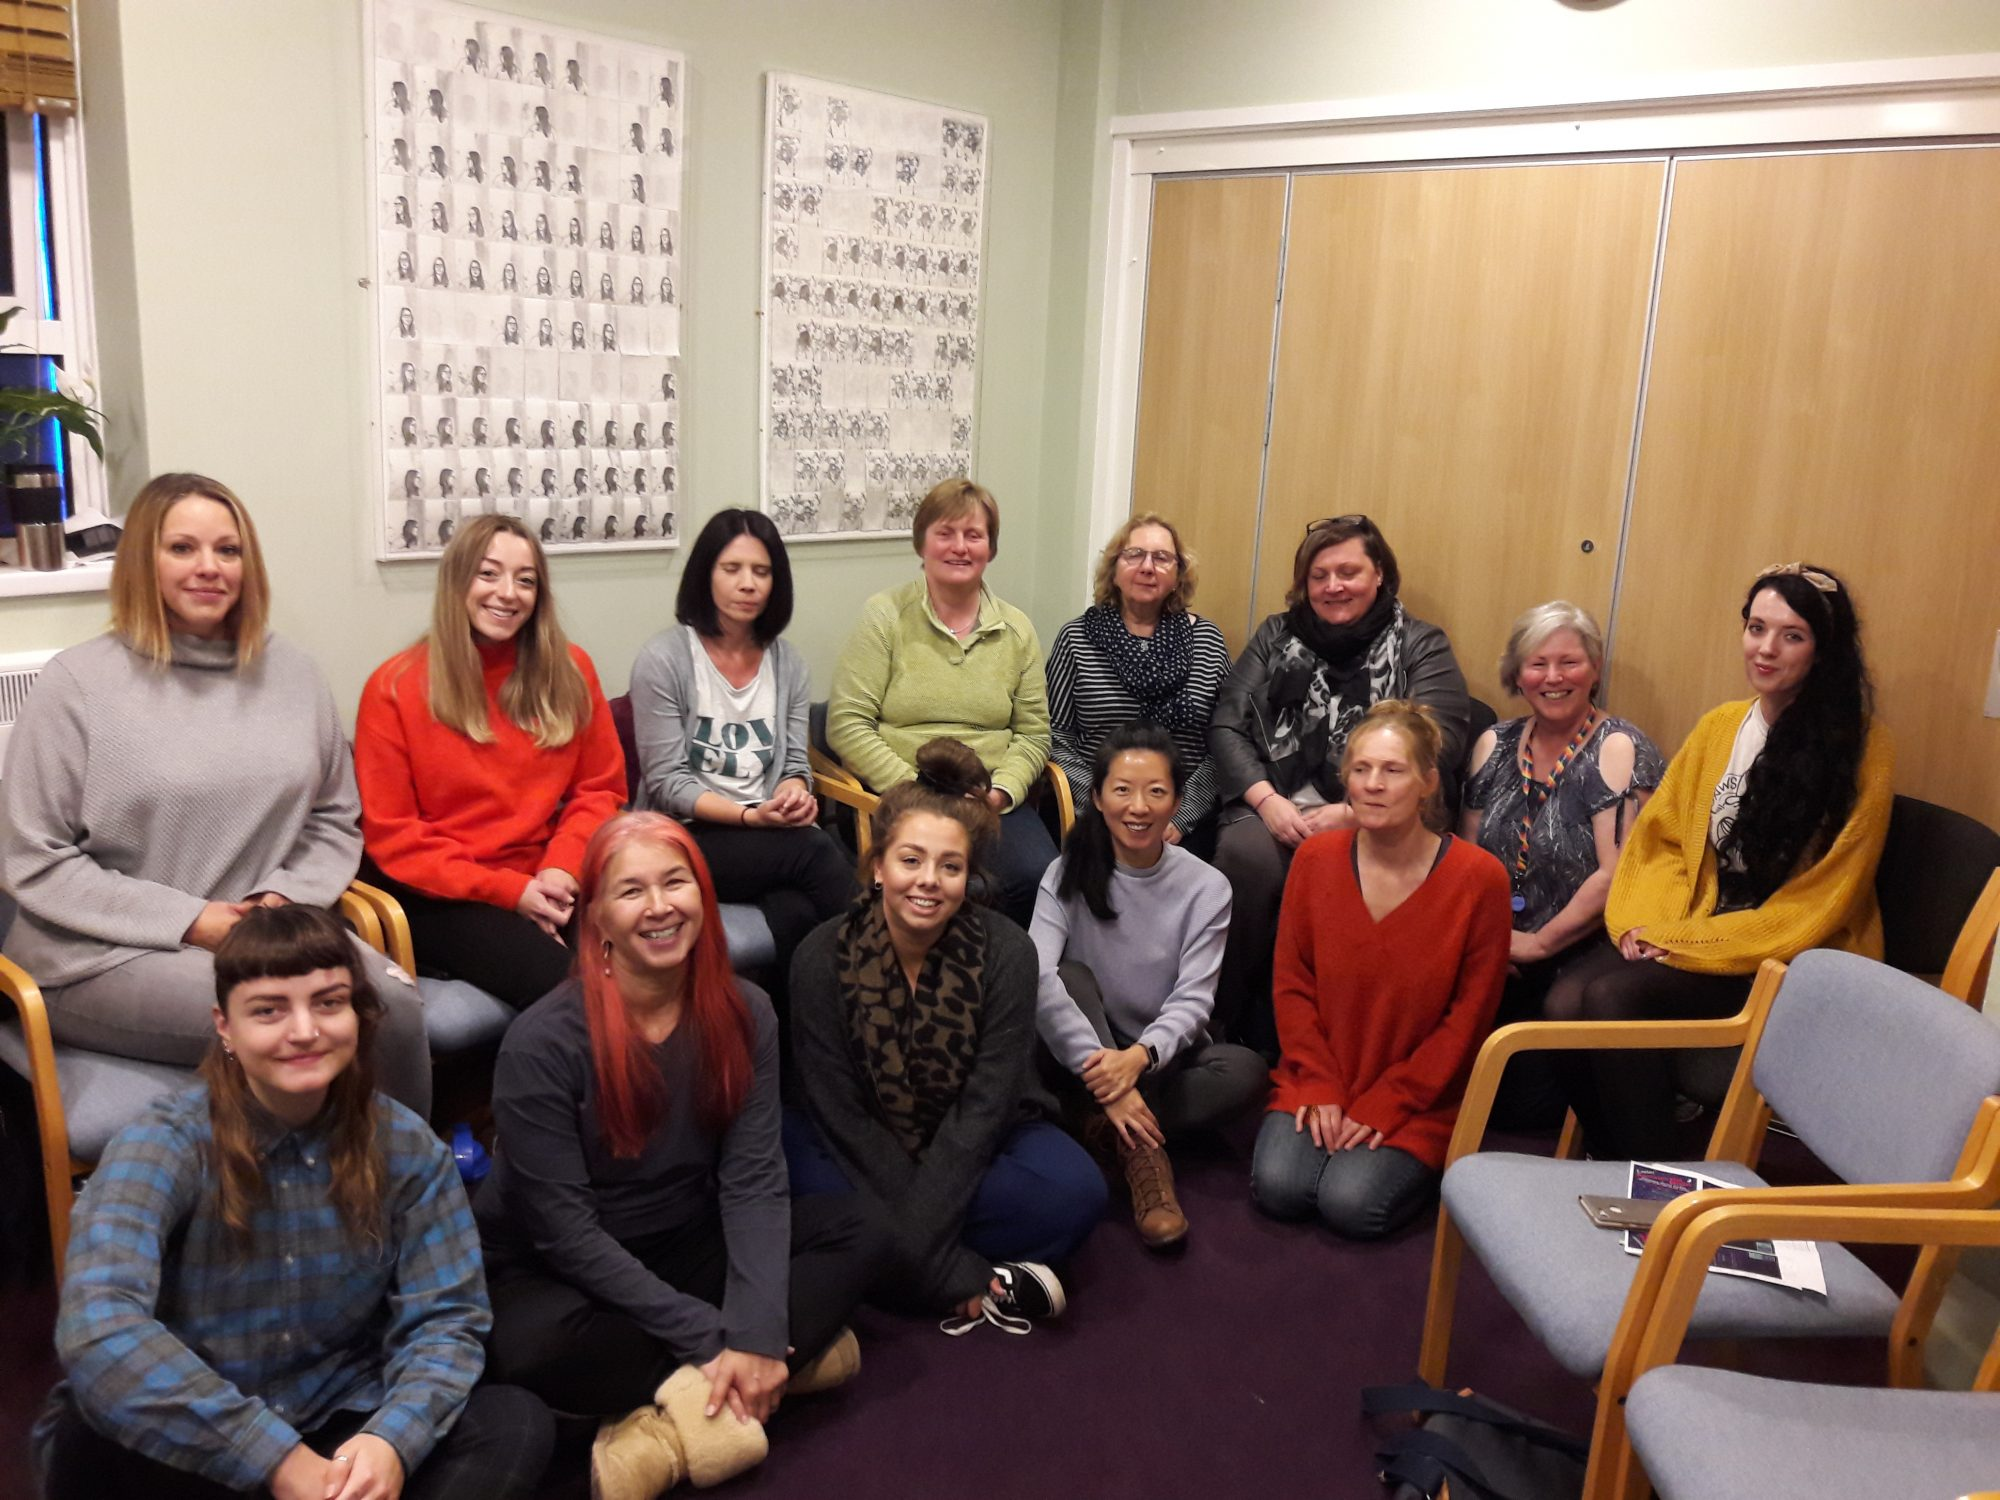 Volunteer group - smiling group of women